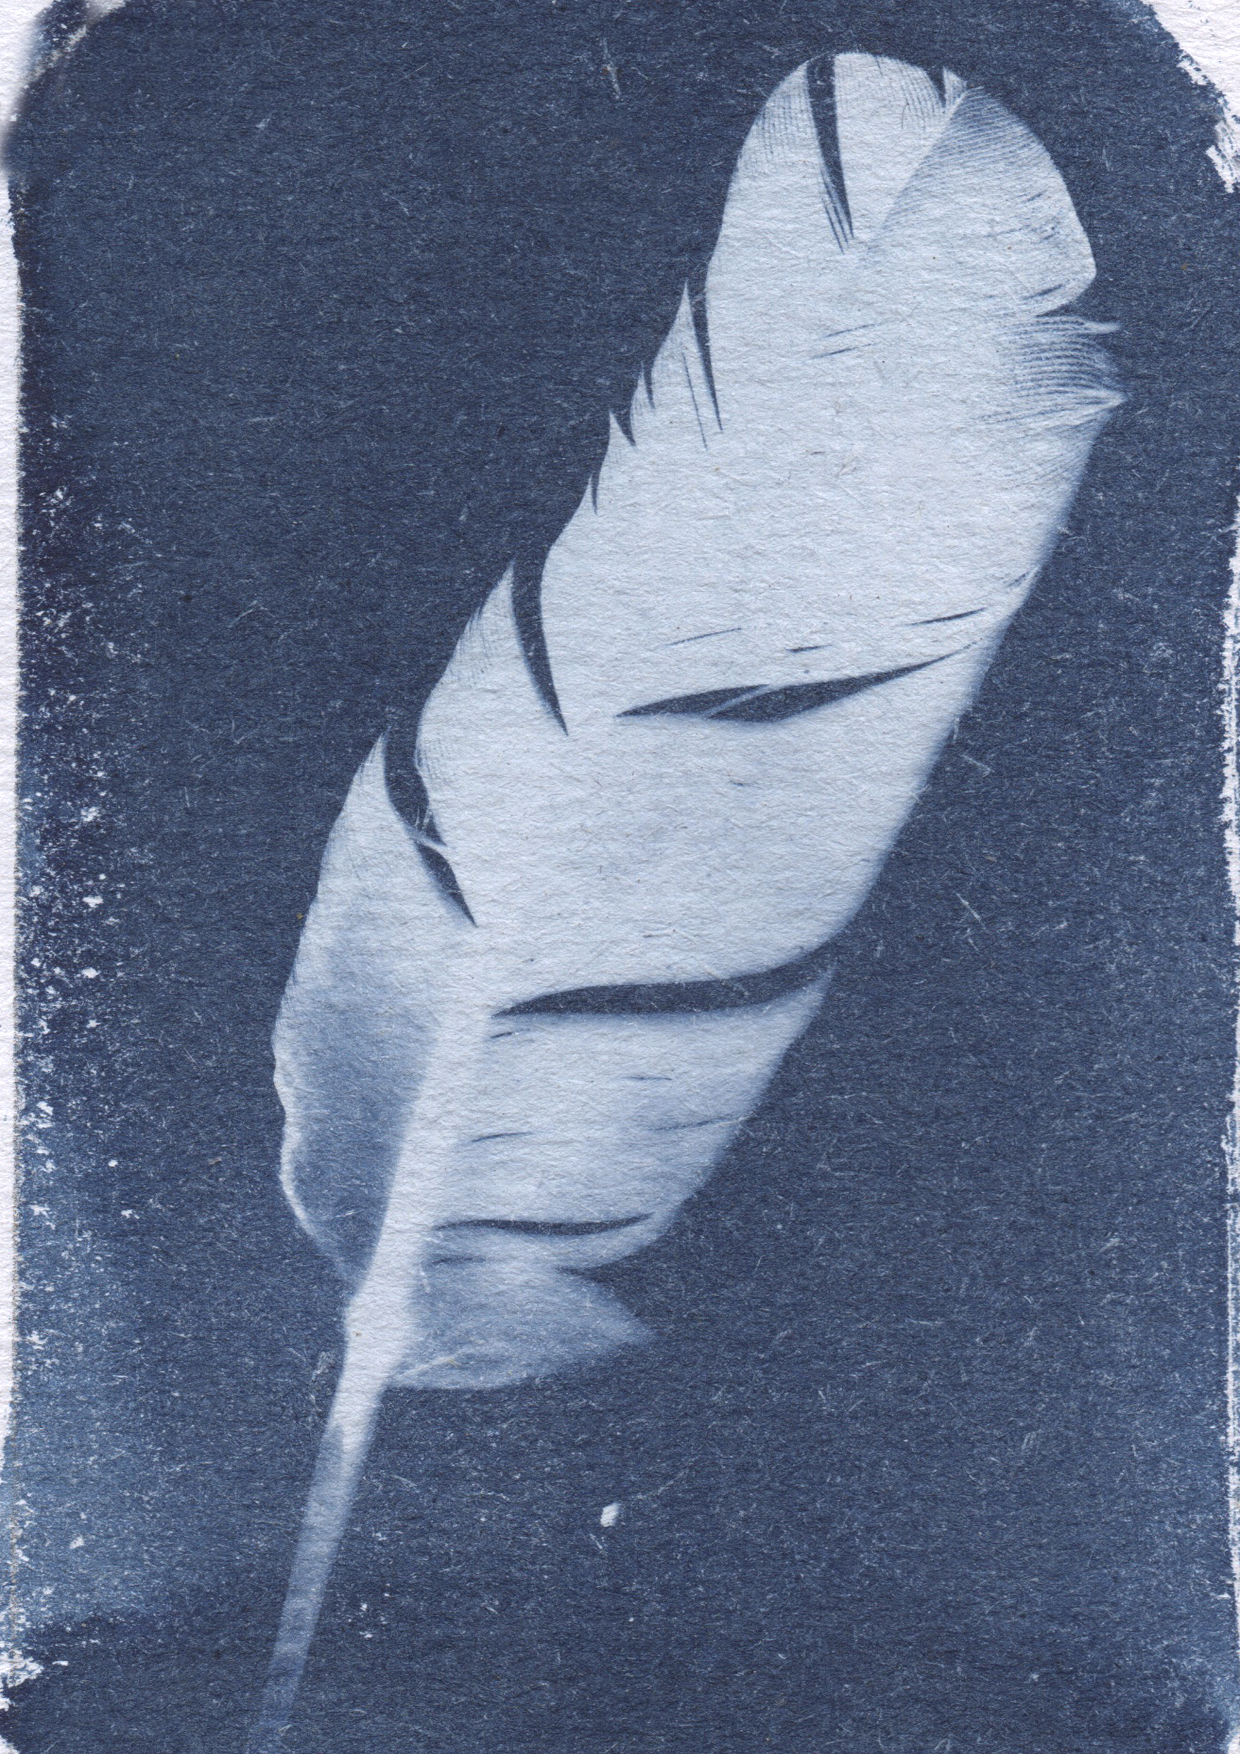 cyanotypefeather